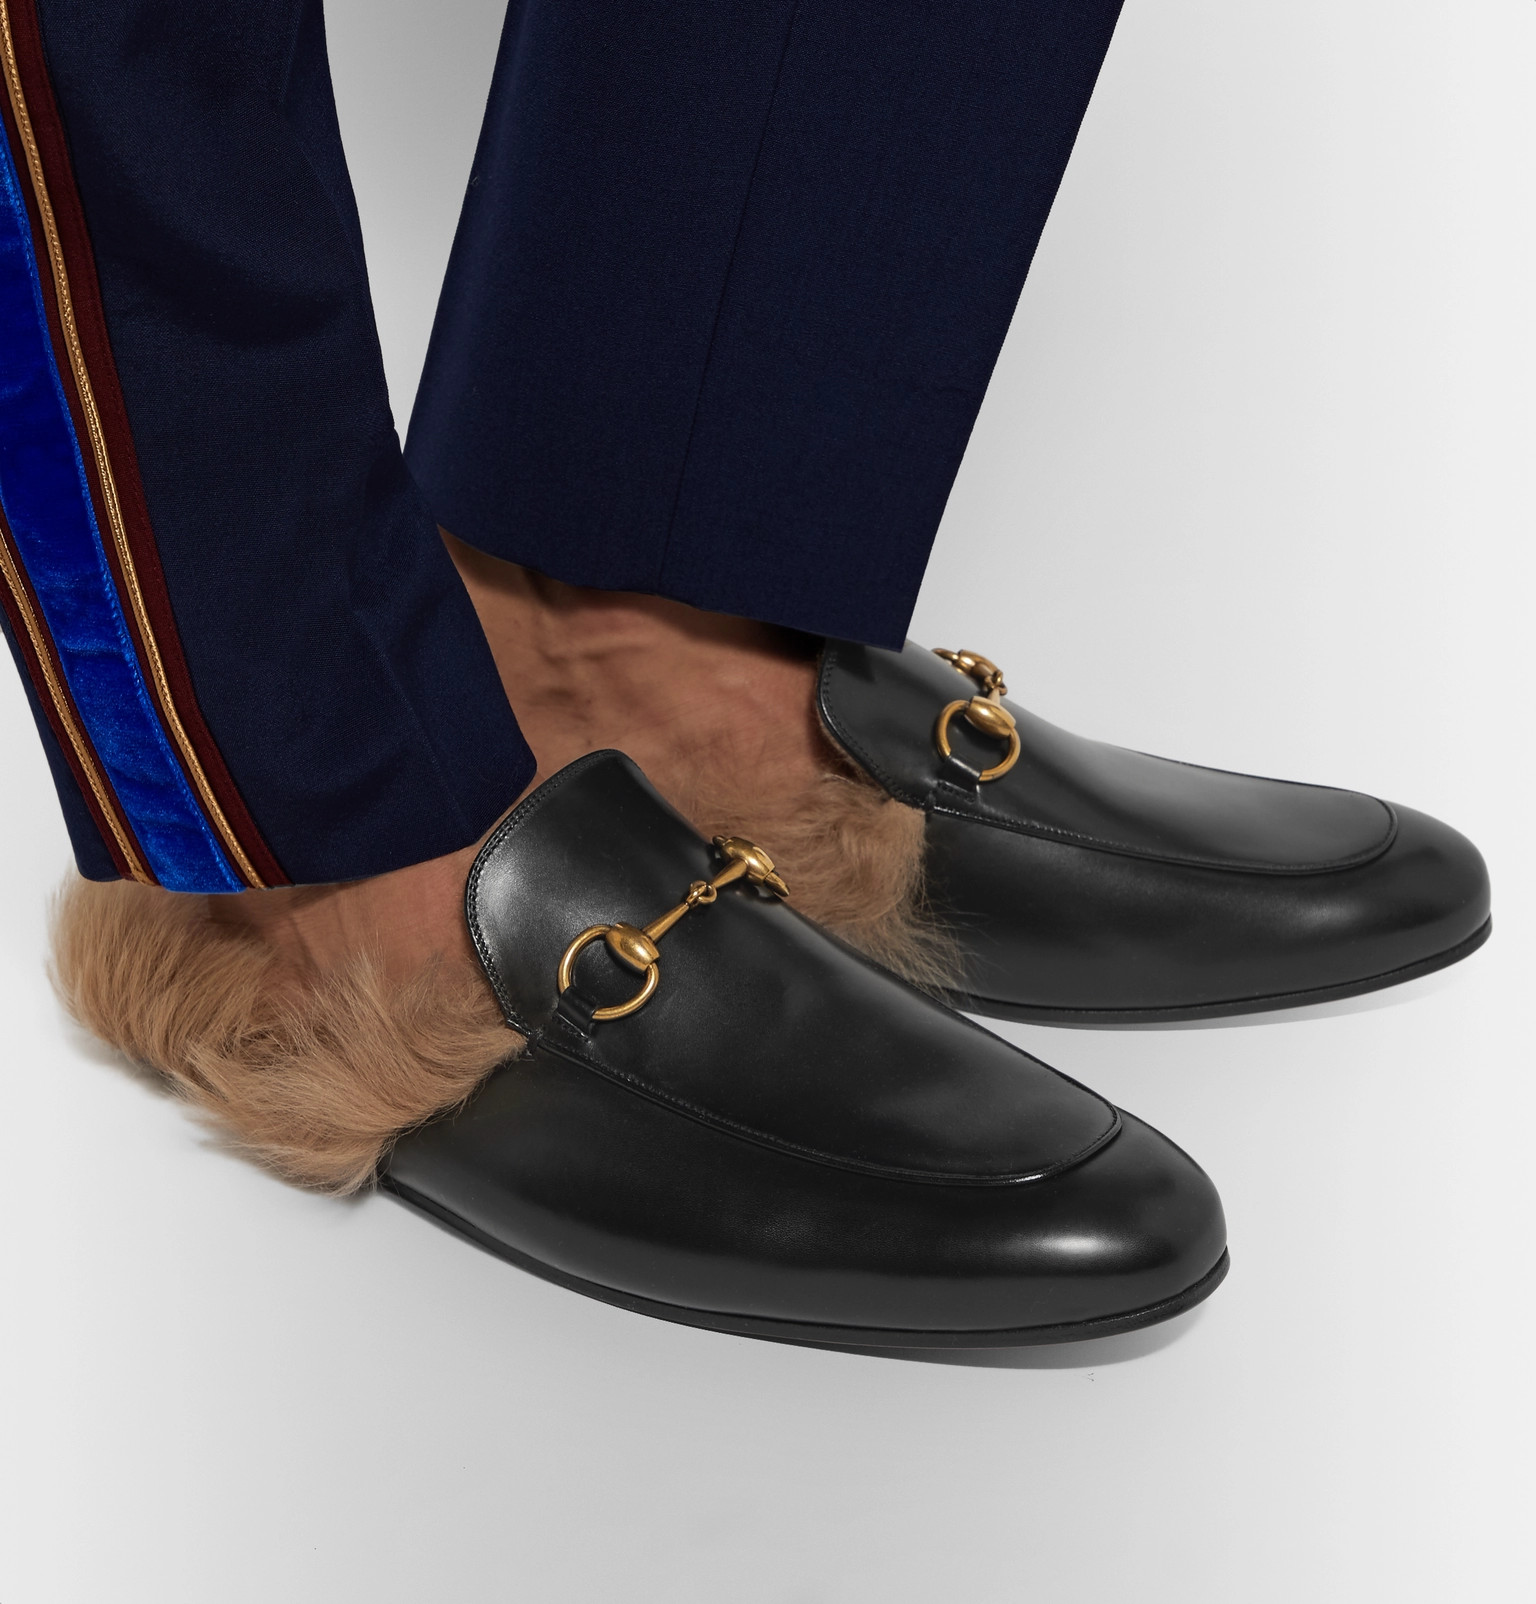 6e7697b9c Gucci - Princetown Horsebit Shearling-Lined Leather Backless Loafers